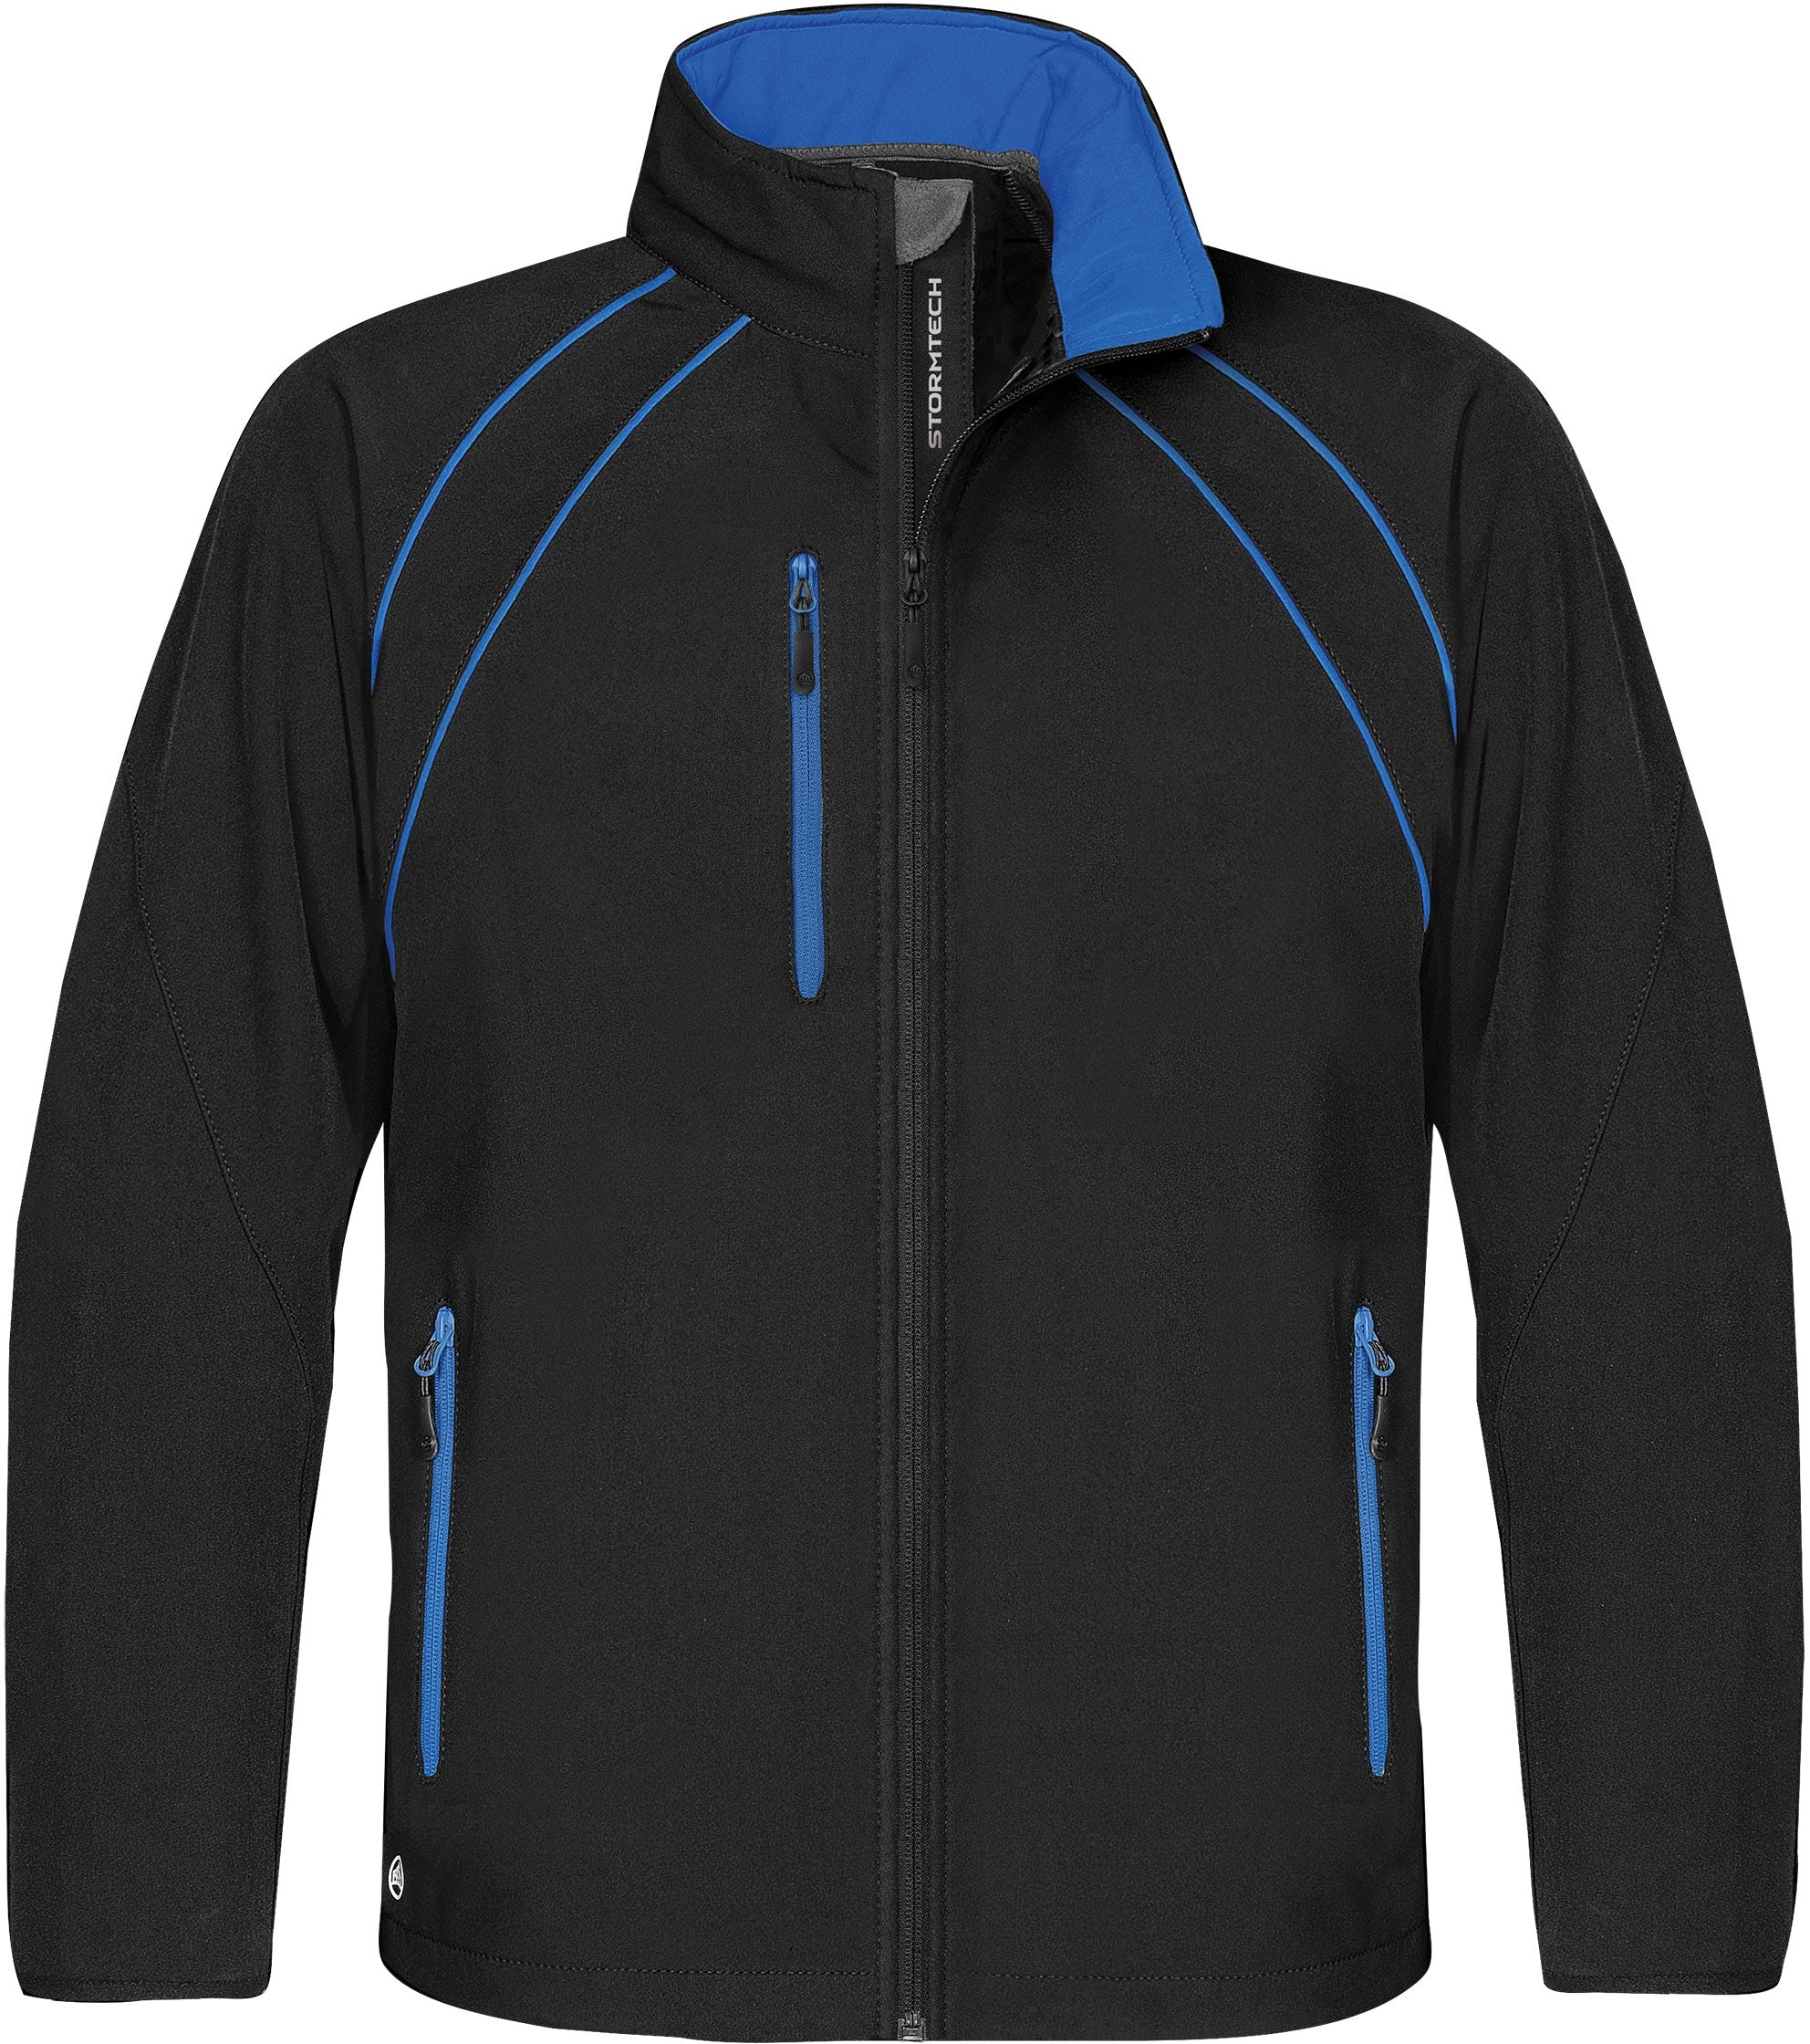 STORMTECH YOUTH CREW SOFT SHELL JACKET